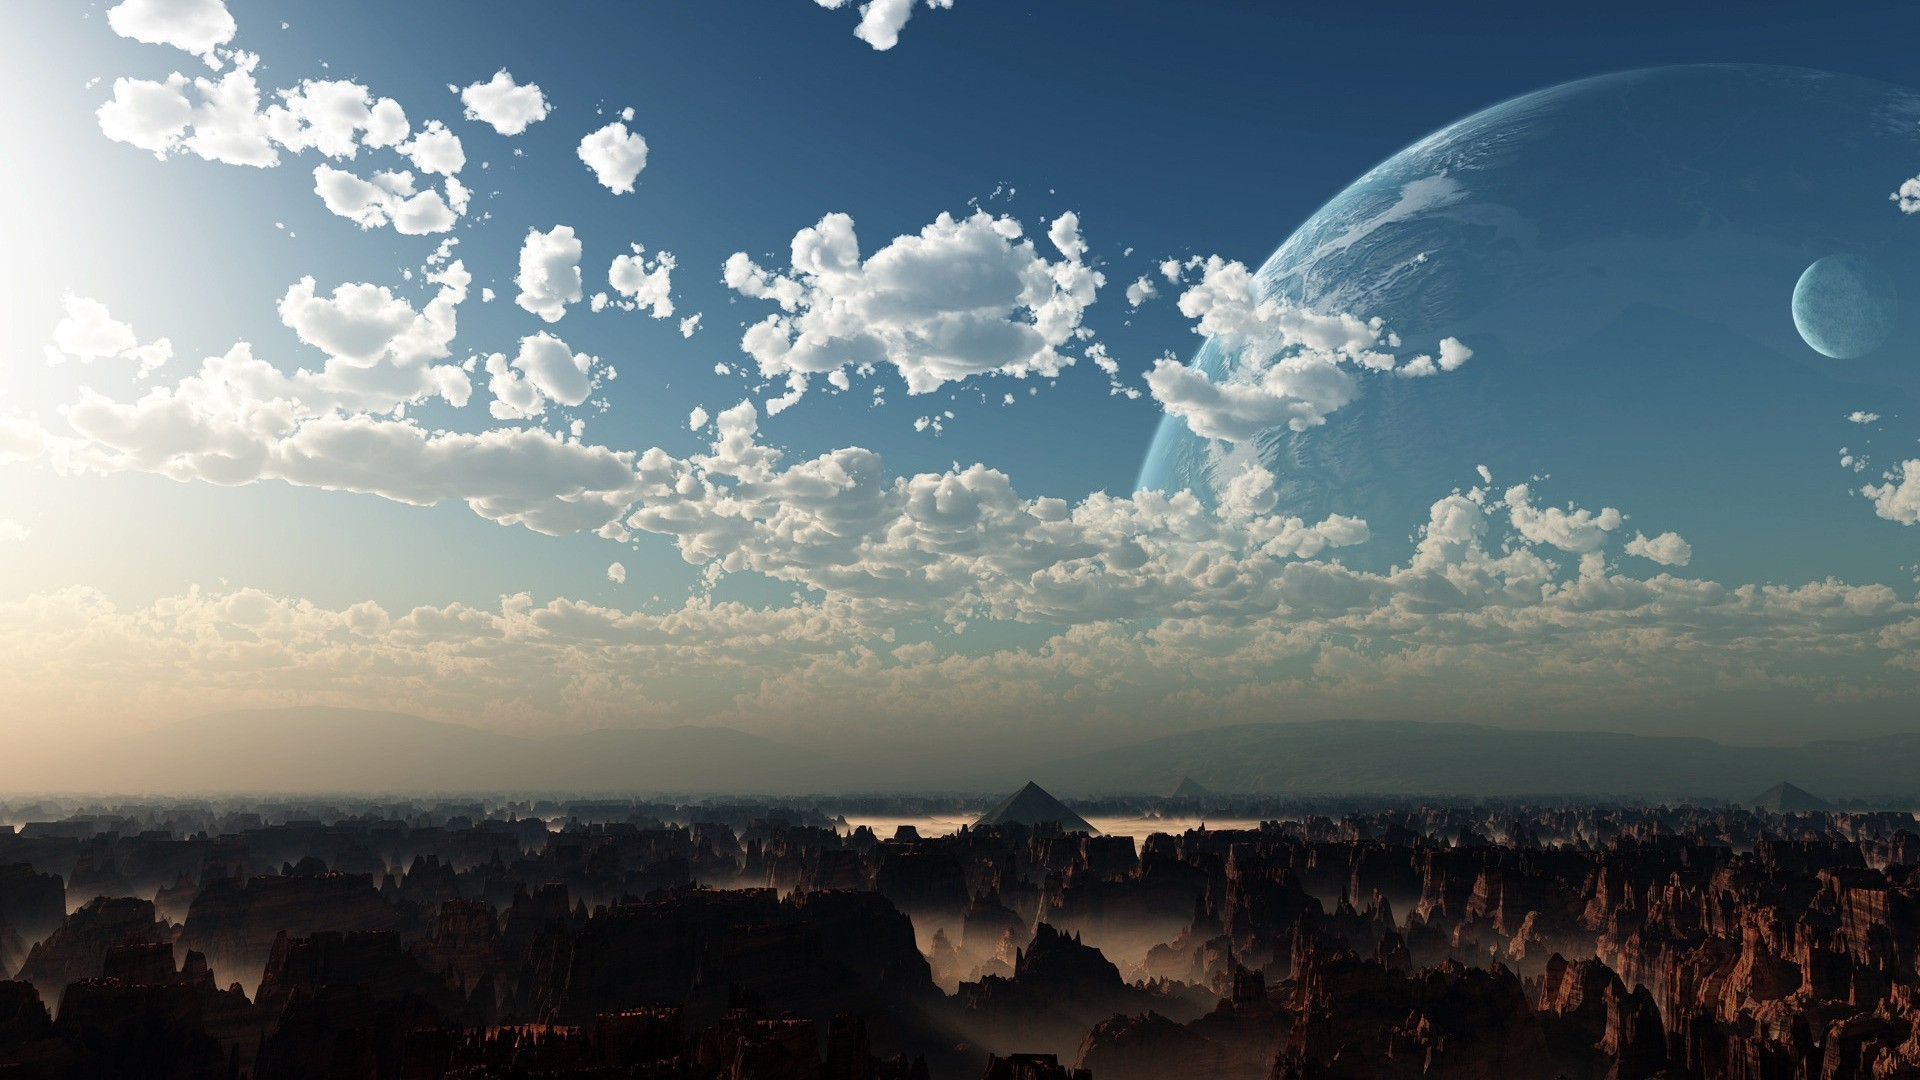 General clouds digital art planet Moon landscape rock formation  sunlight pyramid sky high view canyon